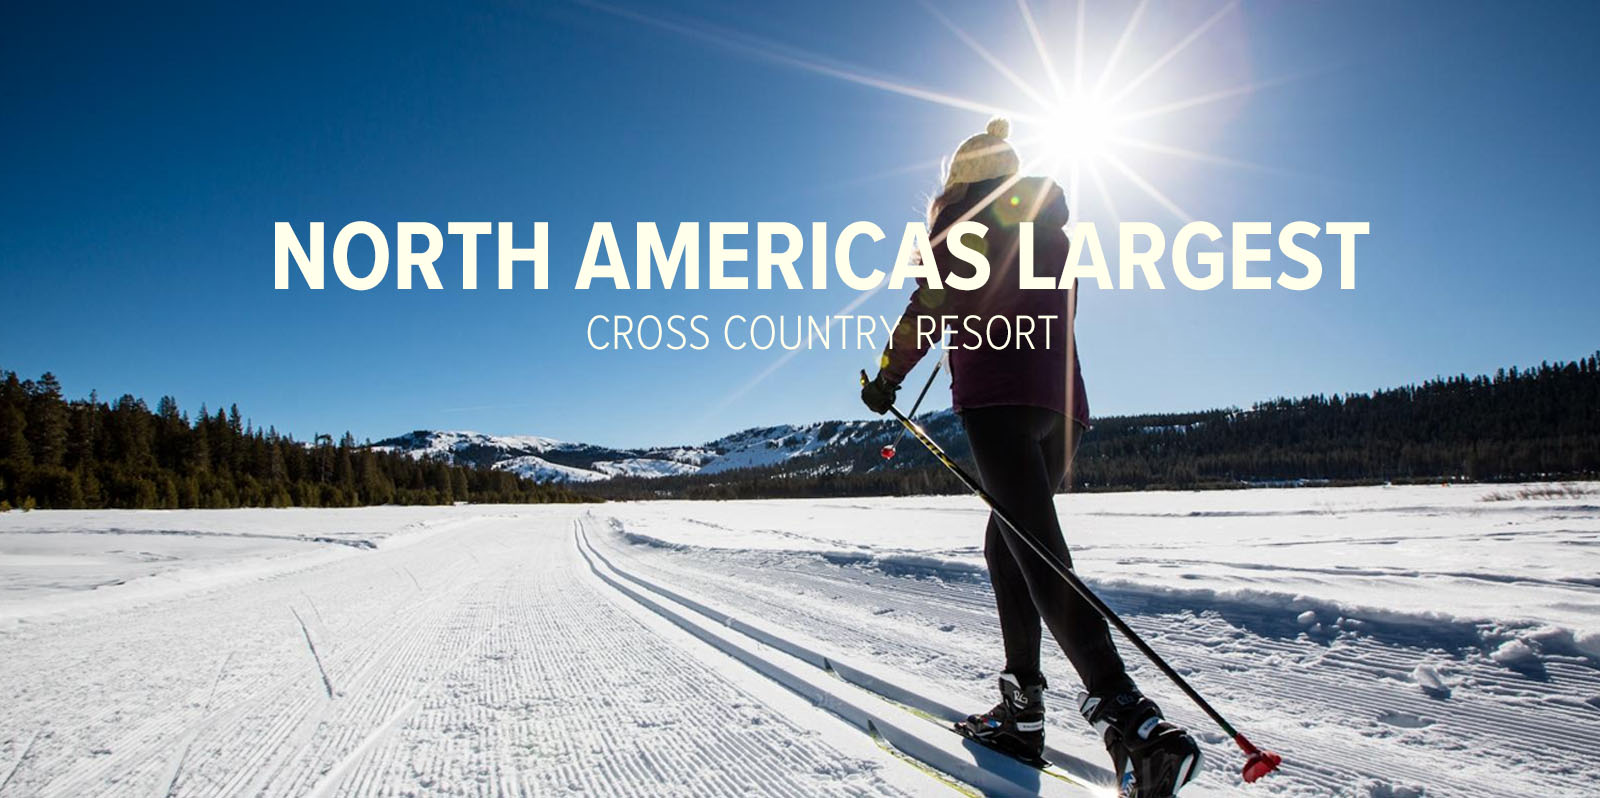 North America's Largest Cross Country Resort